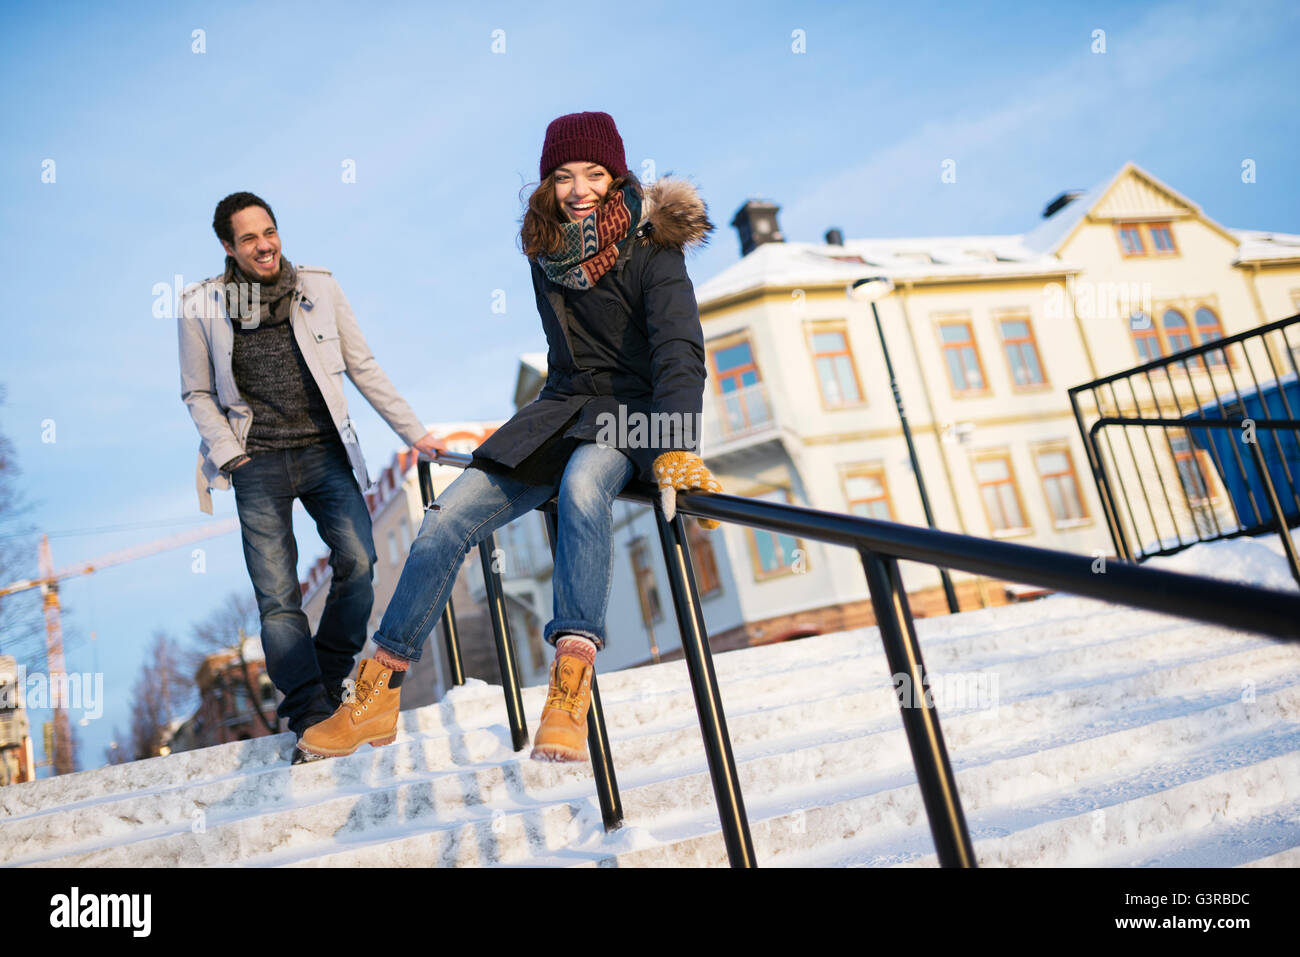 Sweden, Vasterbotten, Umea, Man watching young woman sliding on railing - Stock Image